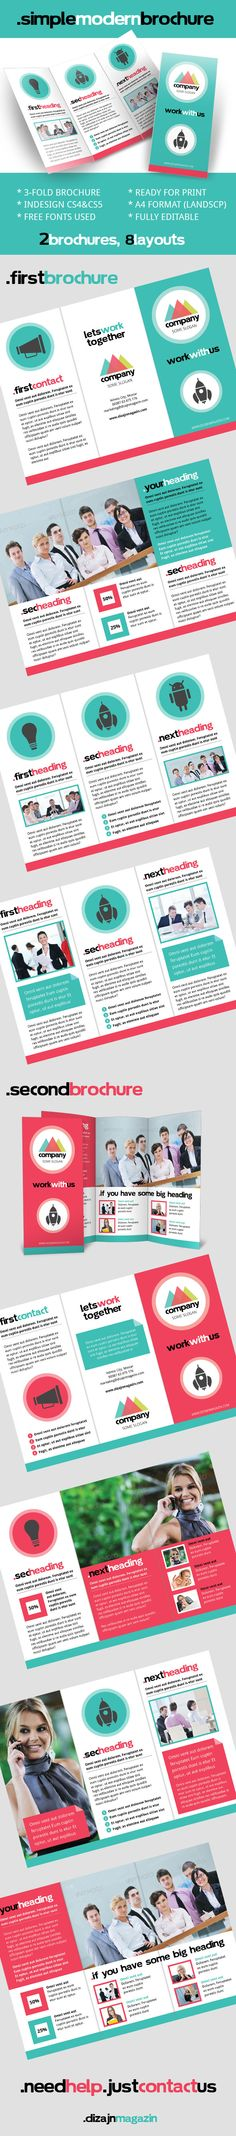 free brochure template indesign - 1000 images about free indesign templates on pinterest